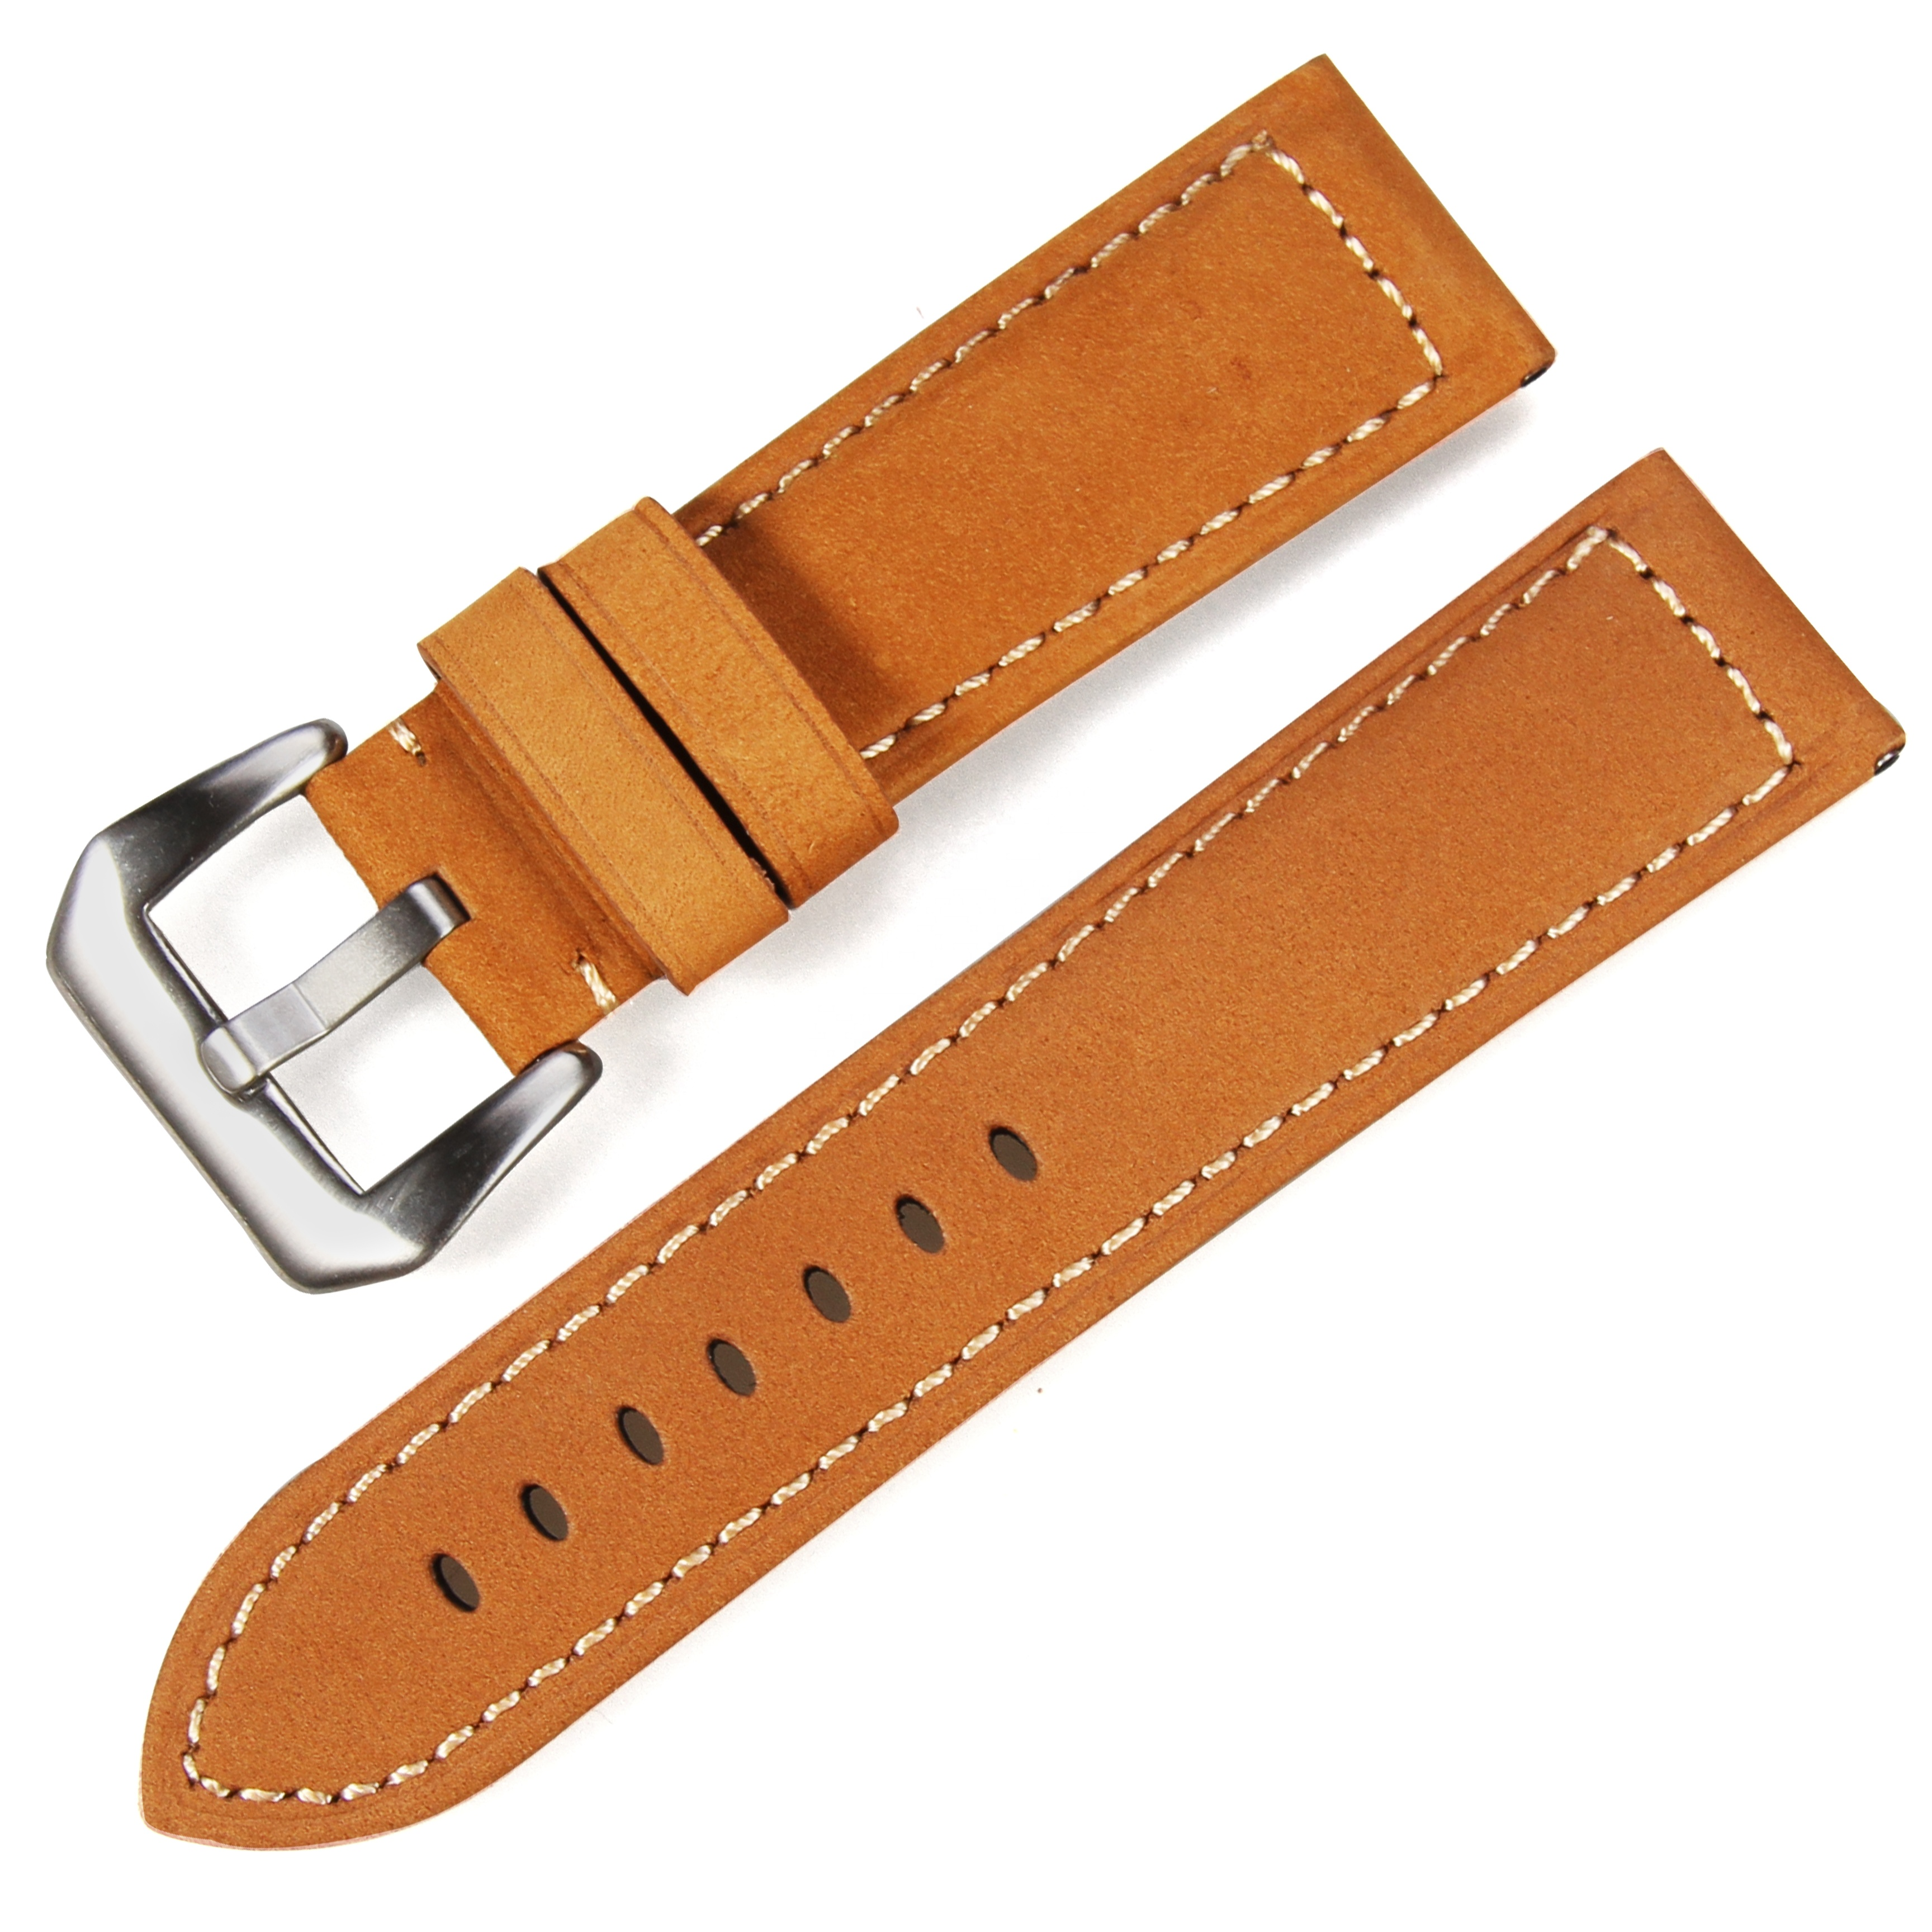 b0e88041b13 Stainless steel buckle 20-26mm low moq 3 colour Watch band for watch  Genuine leather